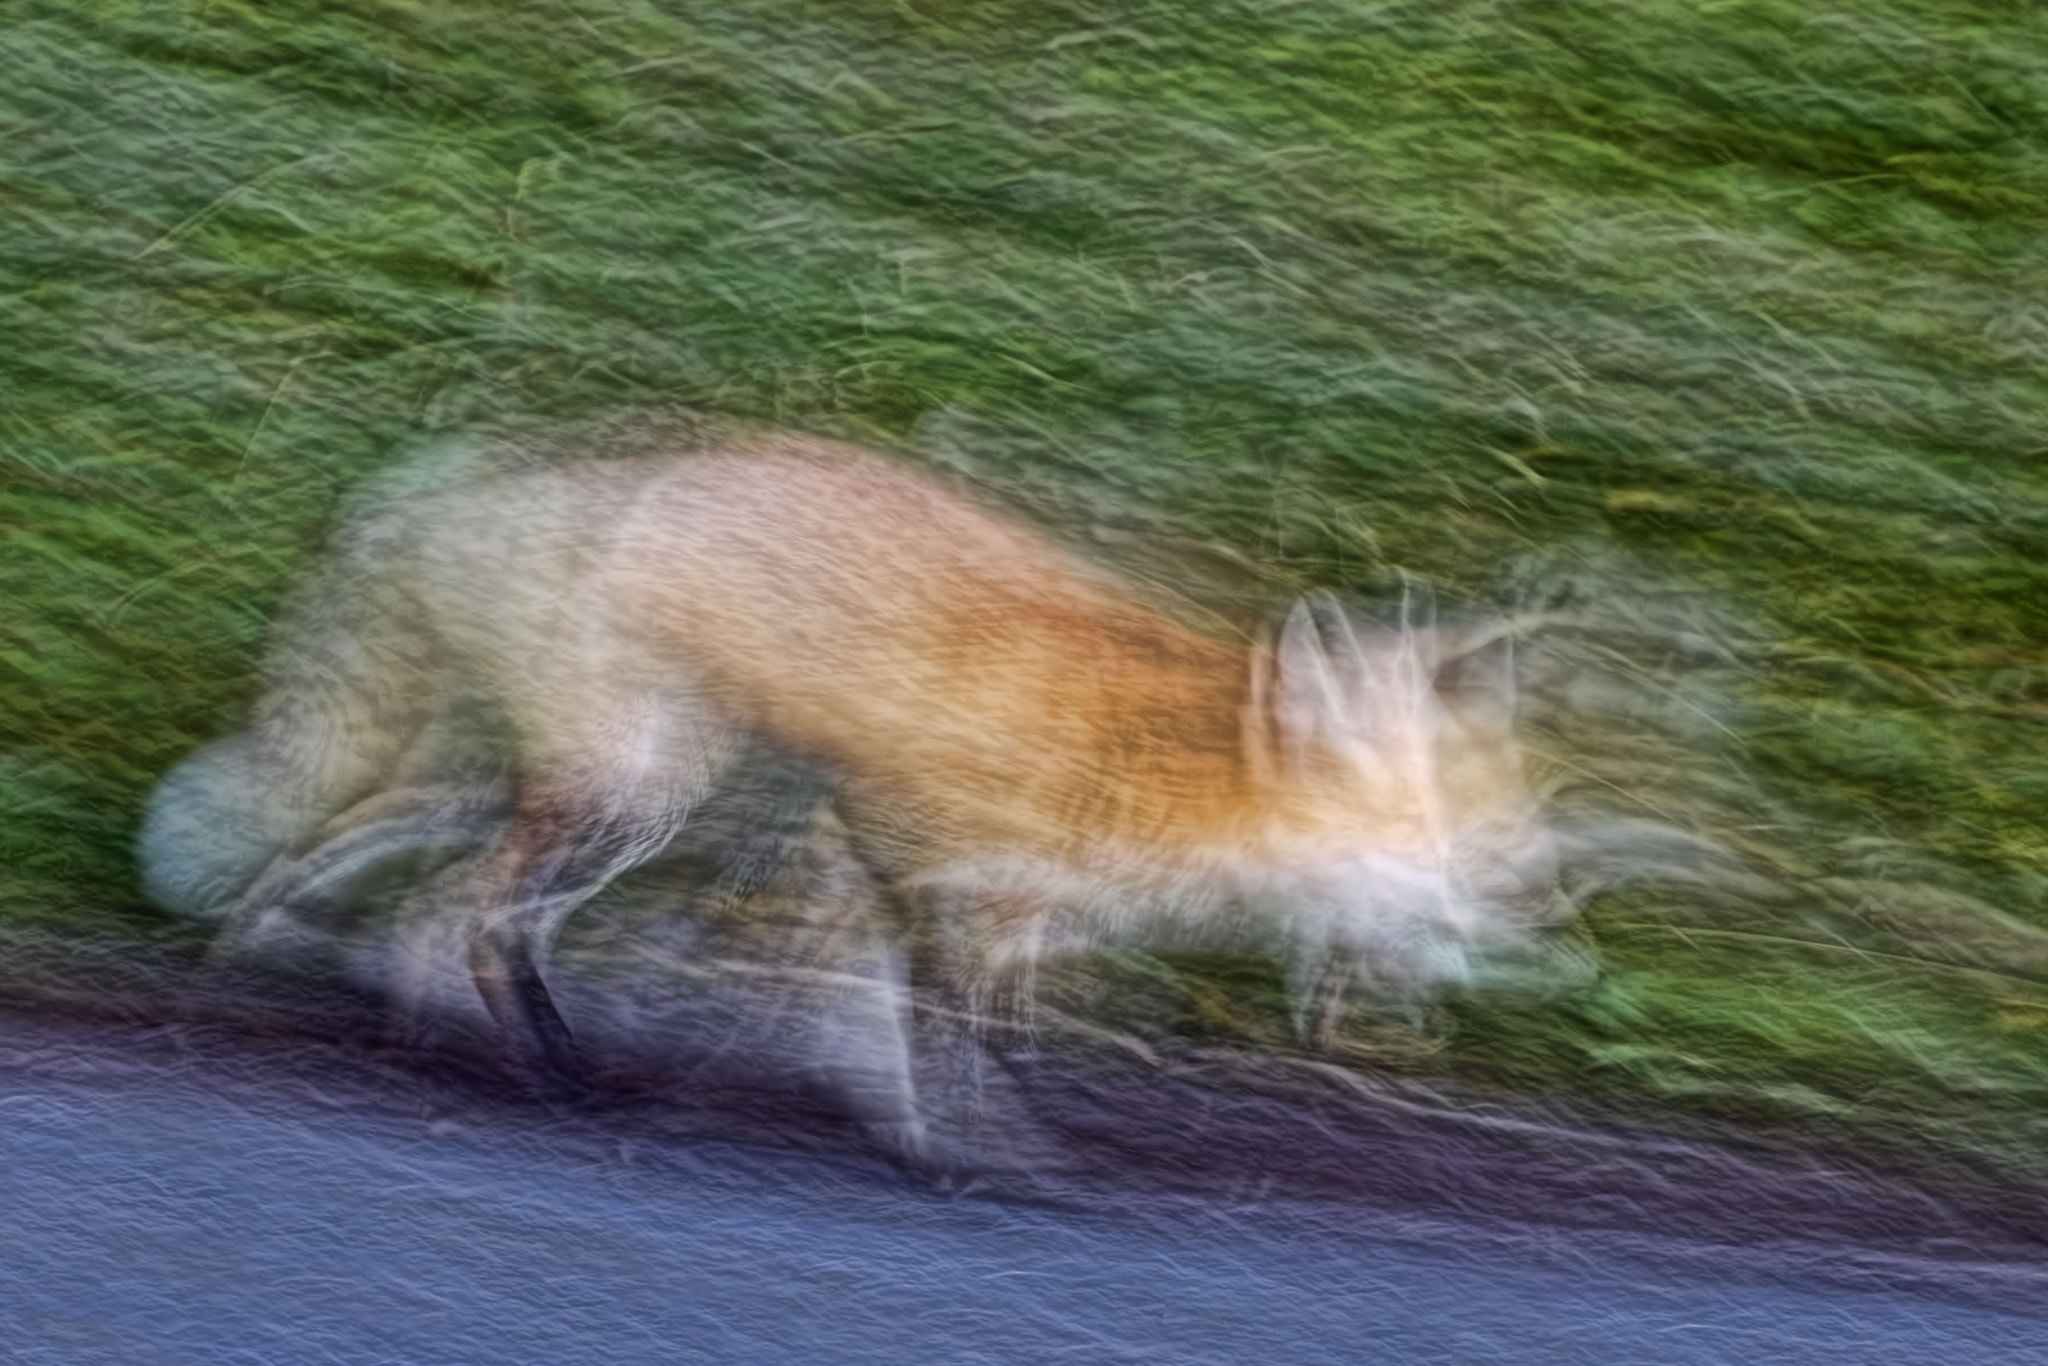 Photograph Fox Descending a Staircase by Gary Holmes on 500px